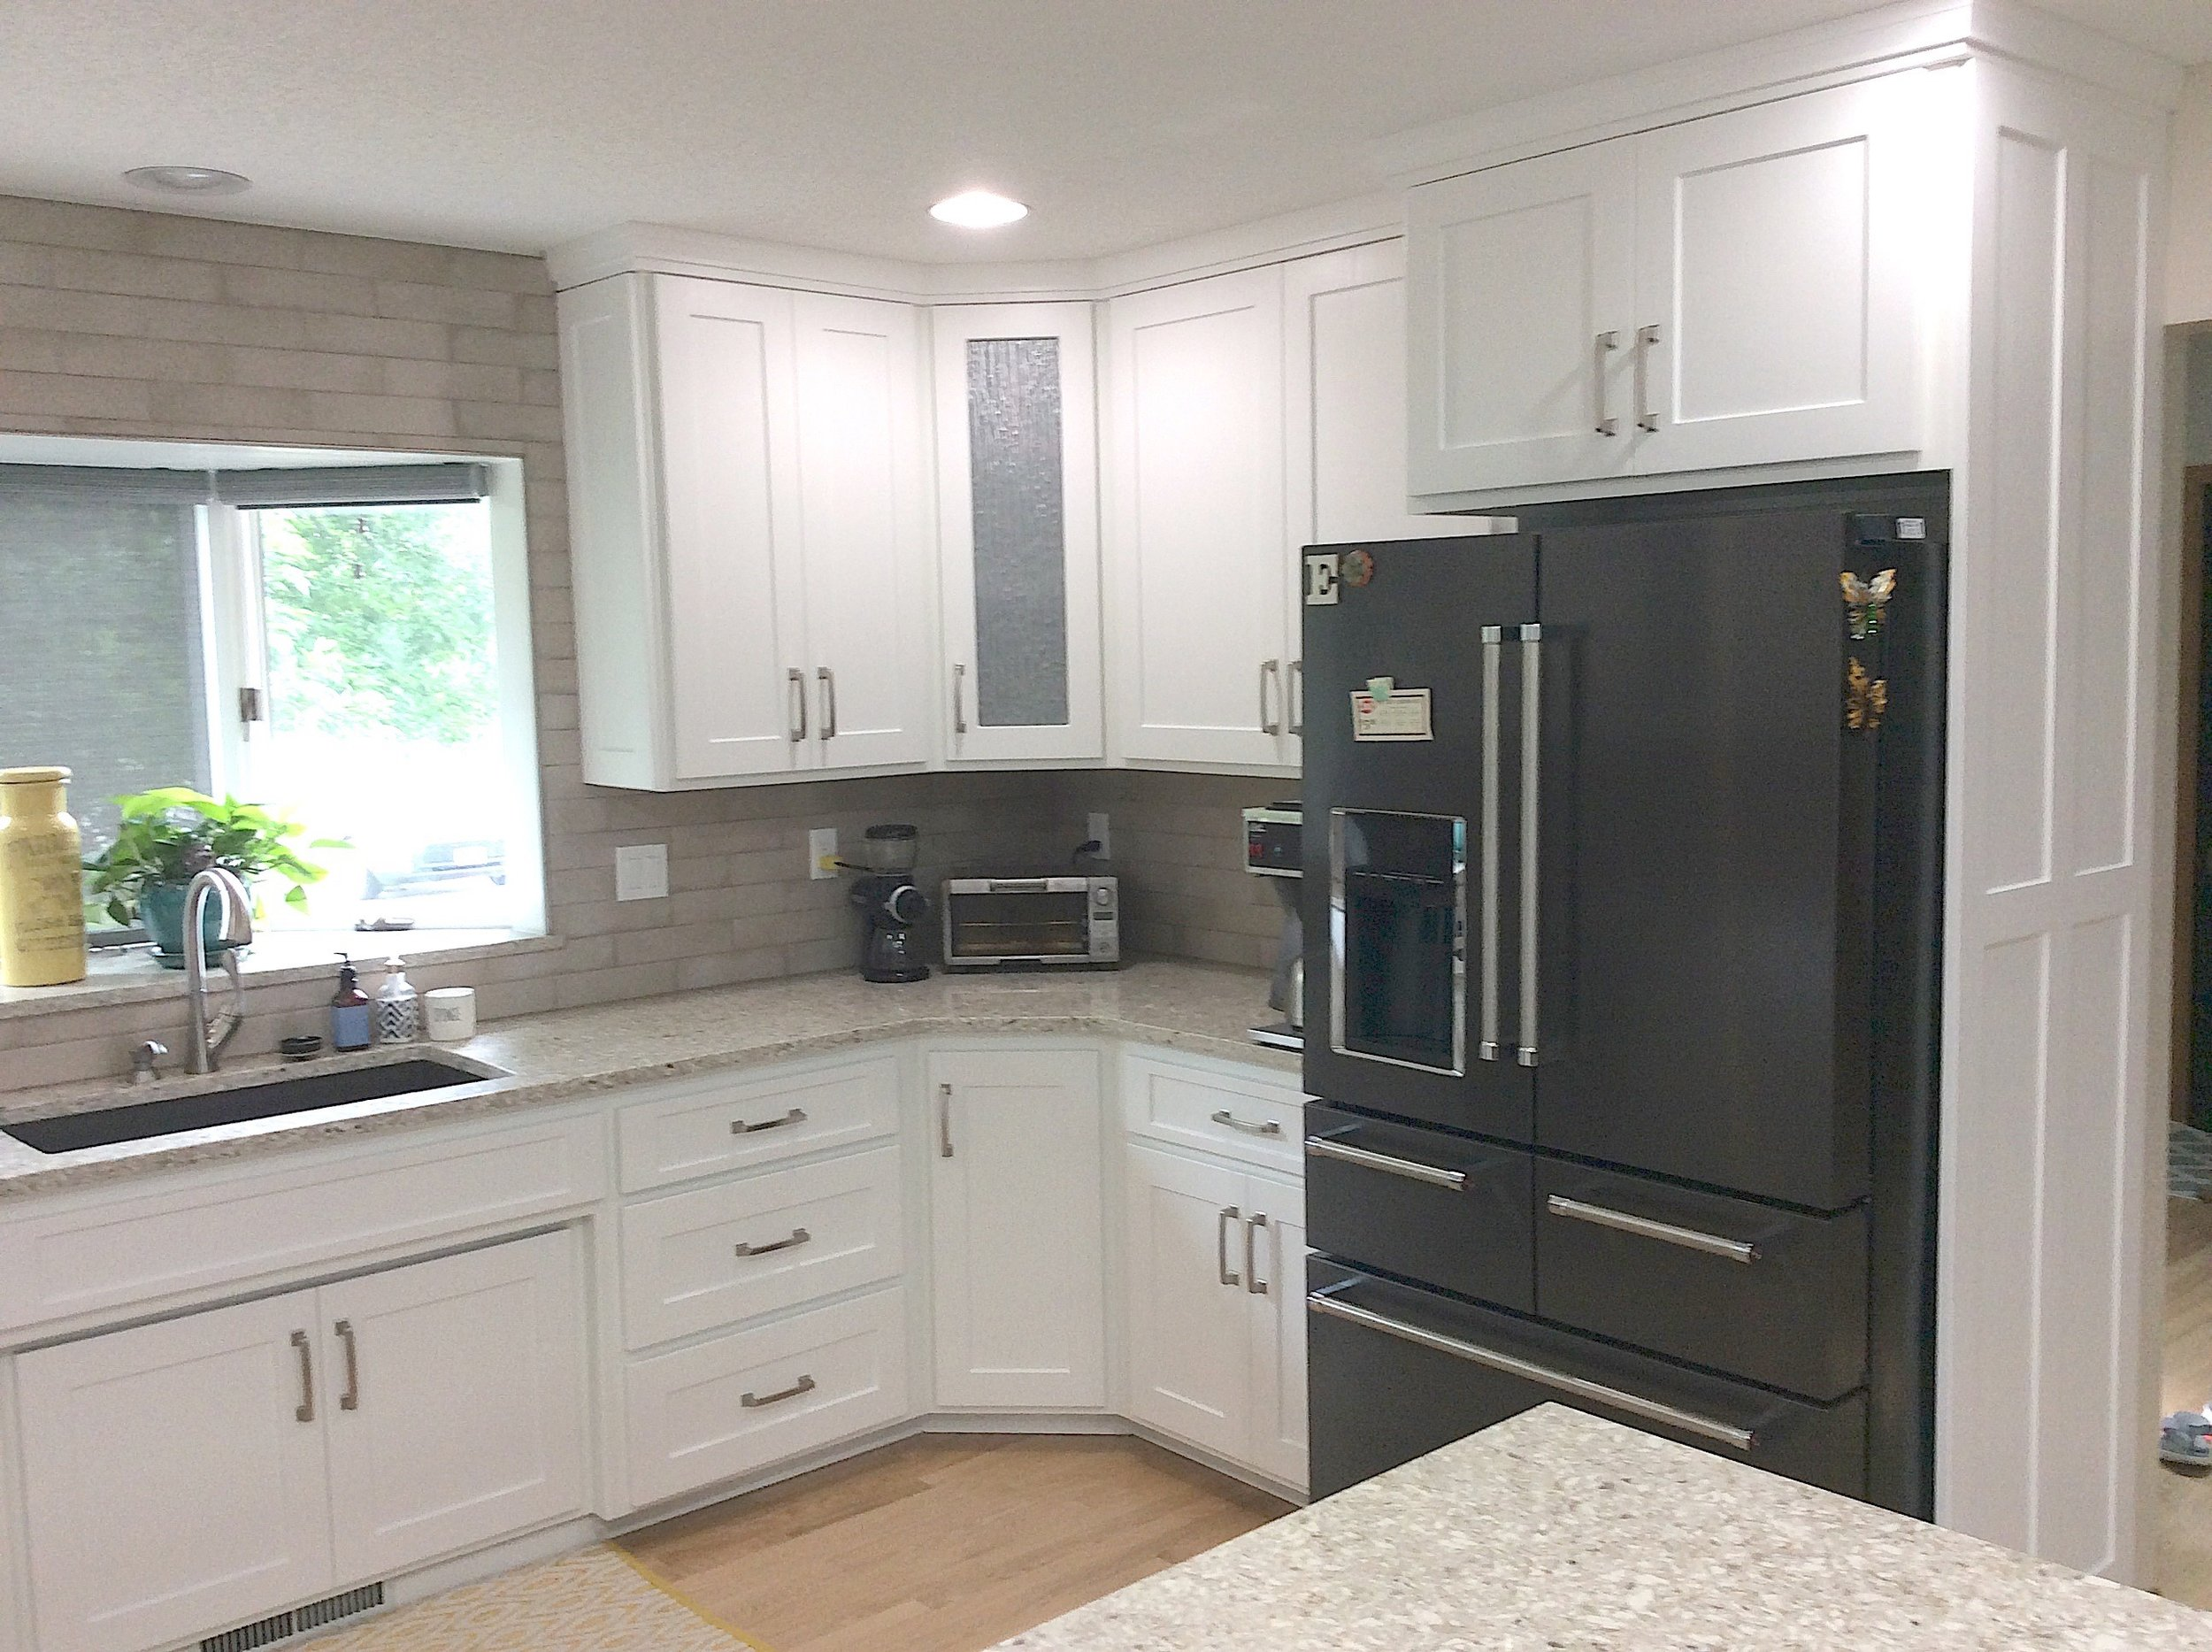 Good-bye '80s kitchen - Shawn E., West Fargo, N.D.This is the way to take your 80's kitchen to a modern look. Very happy and impressed with our kitchen project!!